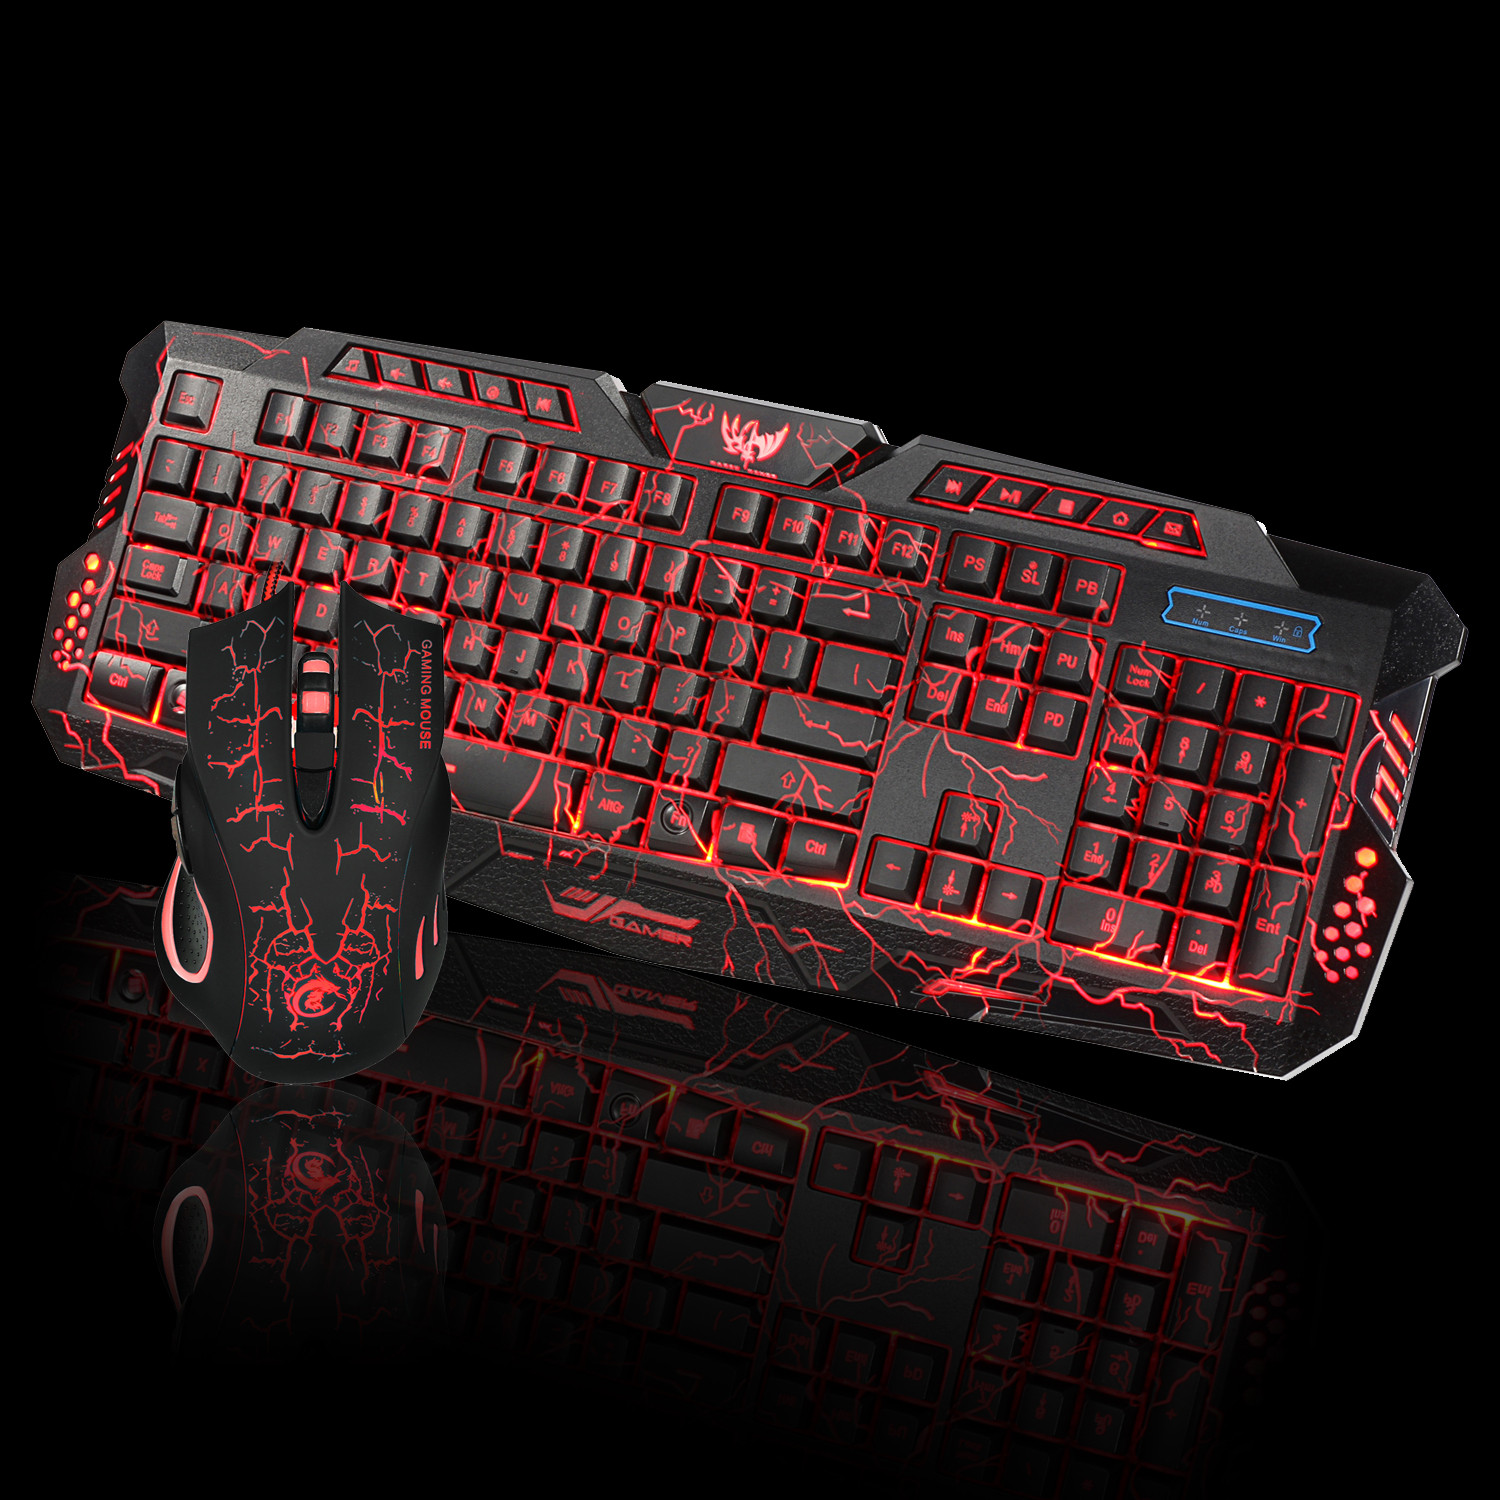 OMESHIN LED Gaming Keyboard Changeable With Color Luminous Multimedia Ergonomic Gaming Keyboard And Mouse Set For Gamer Computer